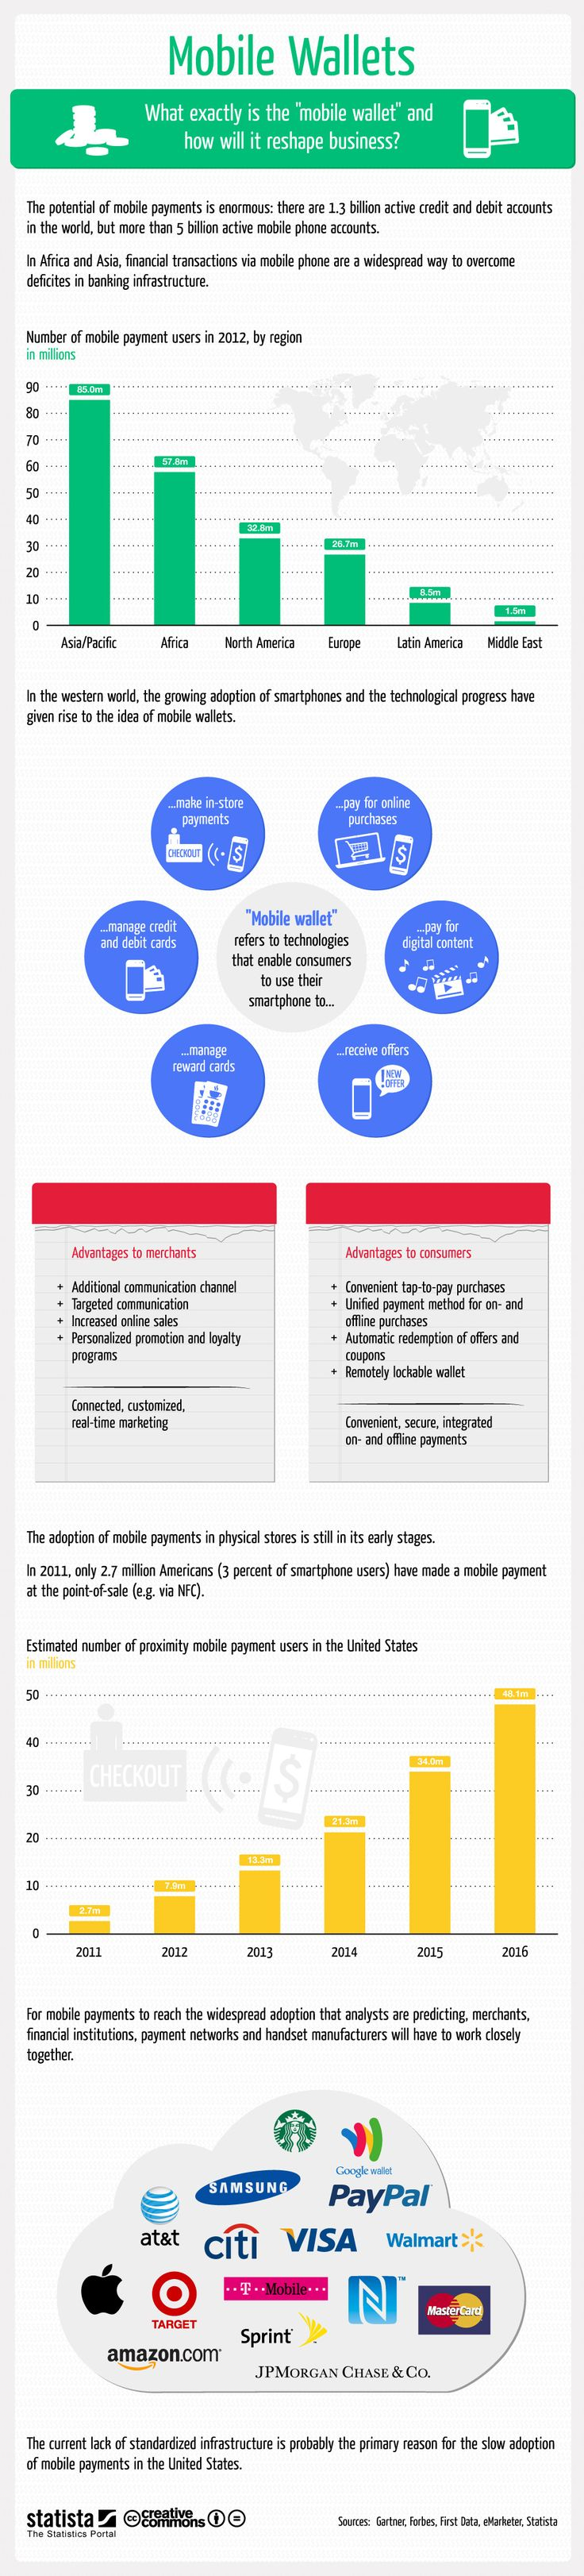 "This #infographic sums up everything you need to know about ""mobile wallets"".  #statista #infographic"